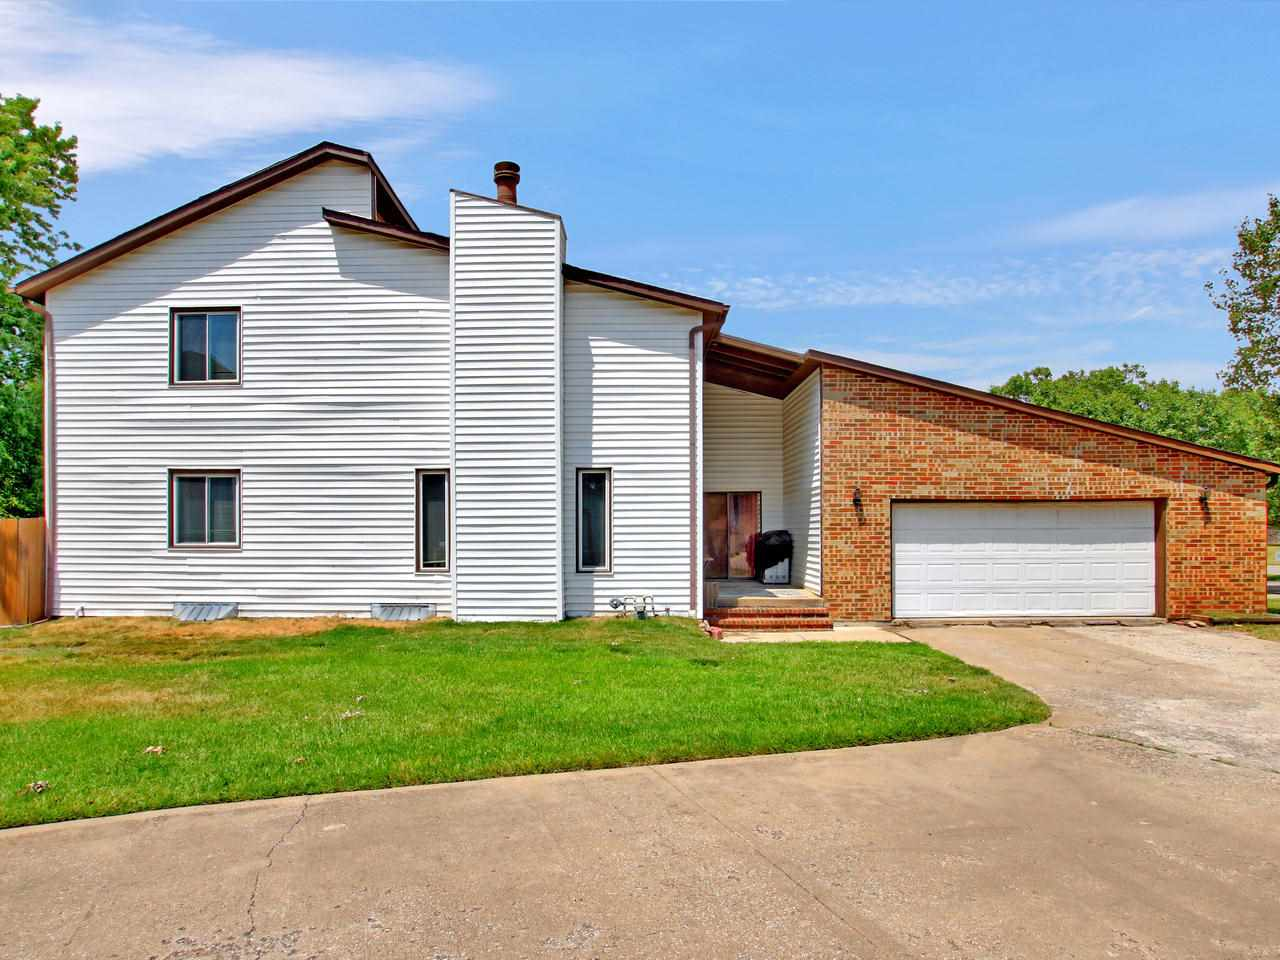 Large 3 bedroom twin home in a quiet NE Wichita neighborhood, close to shopping and restaurants.  Ma